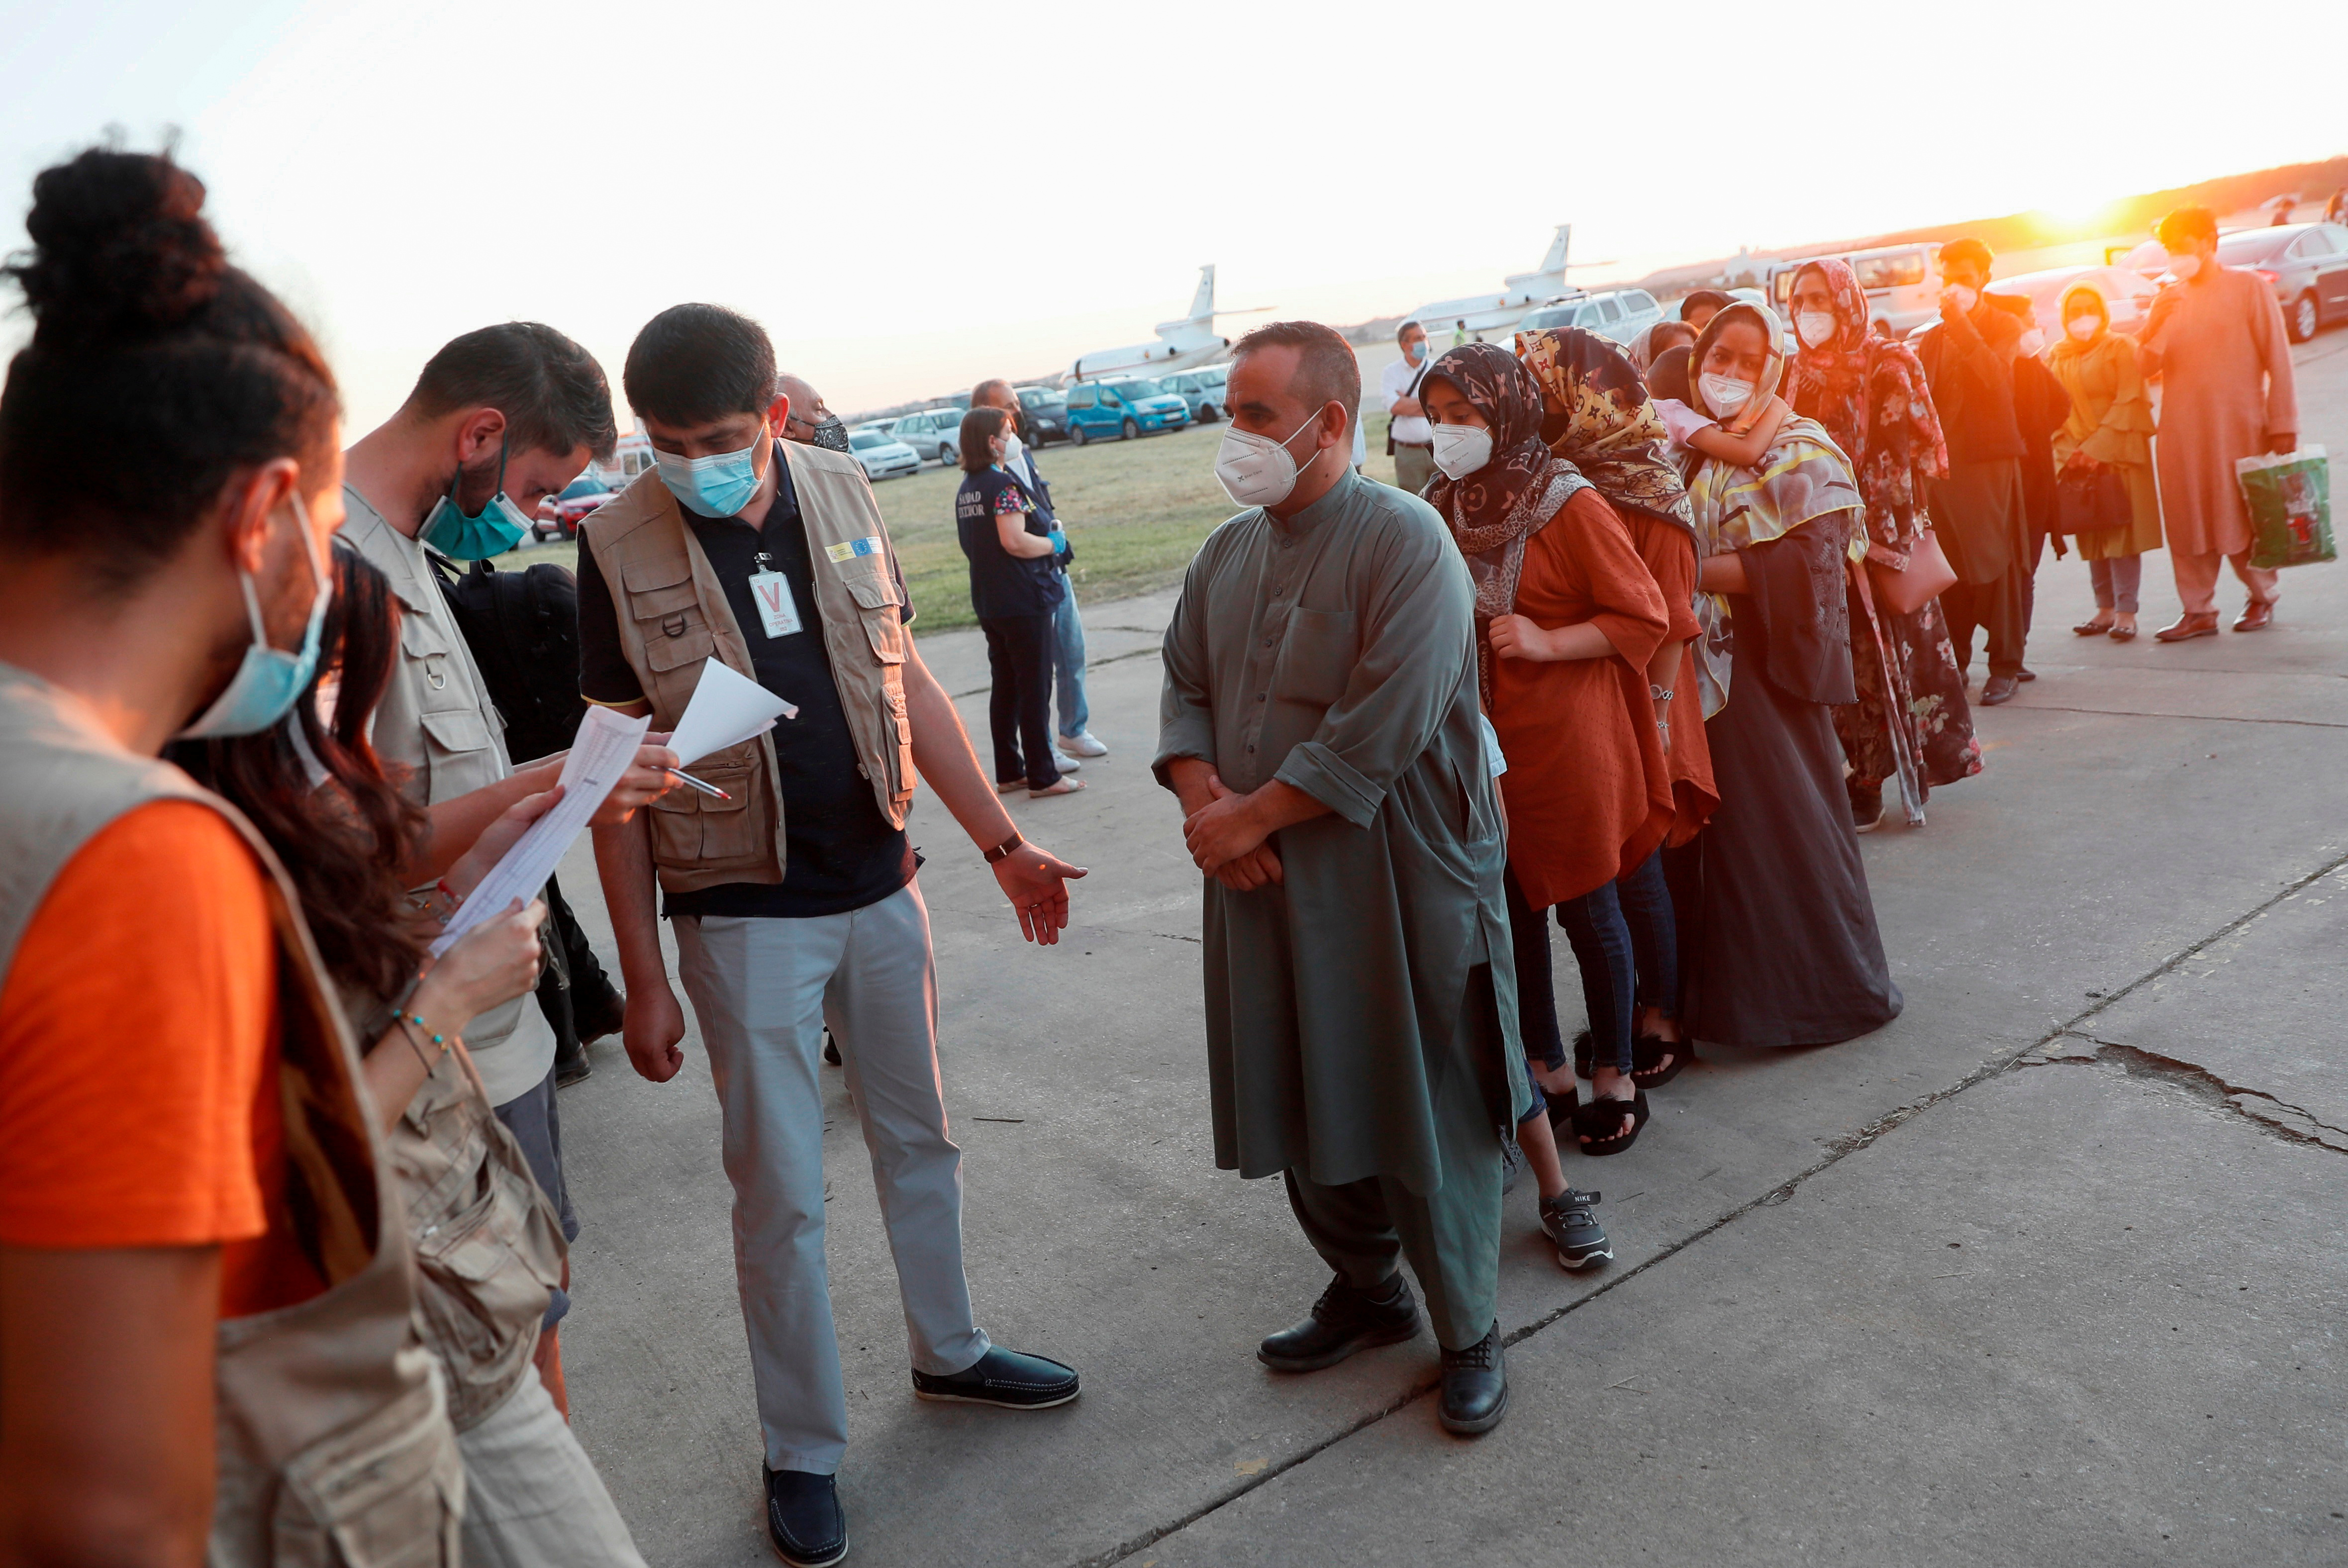 Afghan citizens who were evacuated from Kabul arrive at Torrejon Air Base in Torrejon de Ardoz, outside Madrid, Spain, August 20, 2021. Picture taken August 20, 2021. Mariscal/Pool via REUTERS